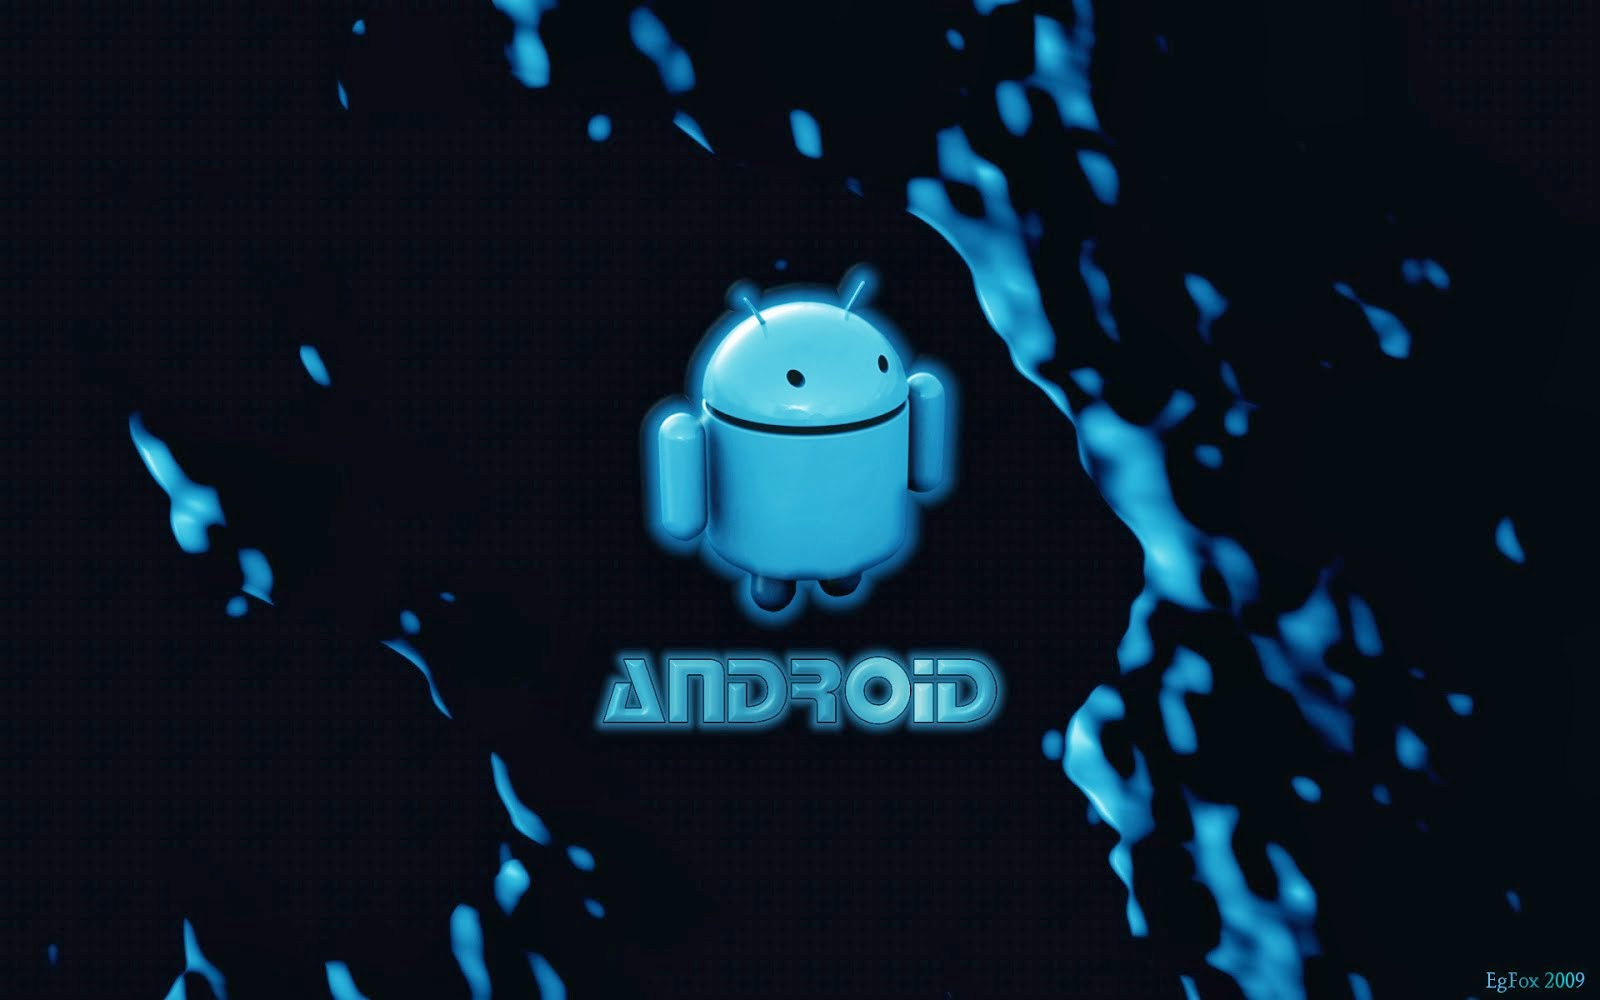 Animated Wallpaper For Android Phones: Animated Wallpaper Android